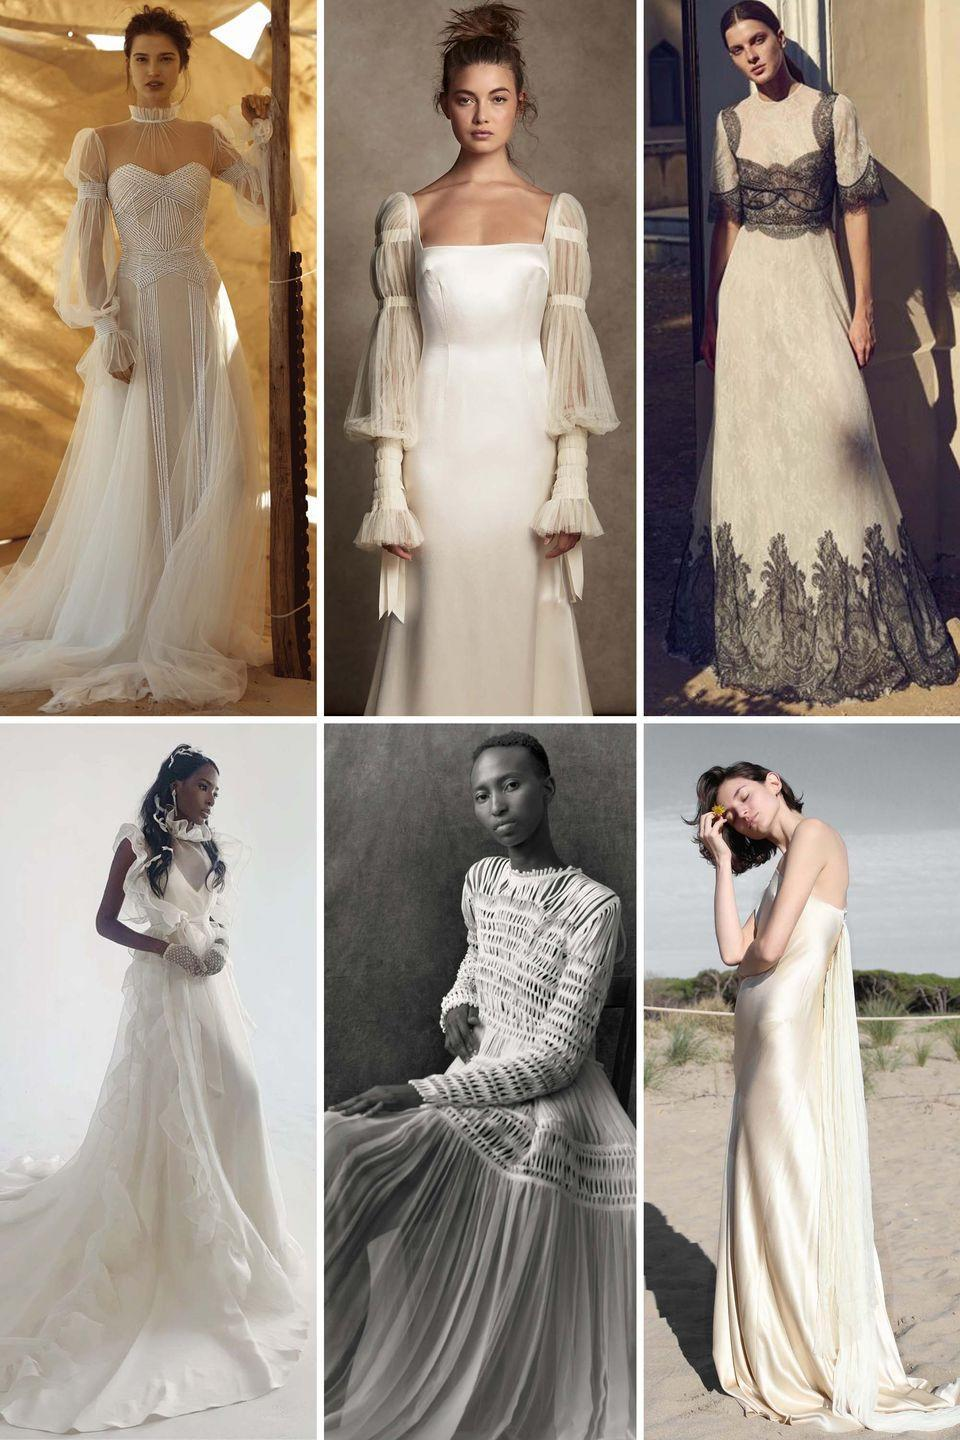 "<p>This is yet another update to the <a href=""https://www.harpersbazaar.com/wedding/bridal-fashion/g7685/bohemian-boho-wedding-dresses/"" rel=""nofollow noopener"" target=""_blank"" data-ylk=""slk:boho bride"" class=""link rapid-noclick-resp"">boho bride</a> of bridal's past—but this year, she comes with an added polish. Bishop sleeves, smocking, empire waists, and an overall ease characterize this look, which is equal parts Victoriana and fashion fairy nymph.</p><p>While each designer interpreted this effortless, chic, at times prairie-inspired look differently—some more modern than others—this is for the girl looking to tap into her inner romantic, without dabbling in festival dressing.</p><p><em>Clockwise from left: Dana Harel Spring 2021; Danielle Frankel Fall 2020; Costarellos Resort 2021; Odylyne: The Ceremony Fall 2021; Maison Rabih Kayrouz Fall 2020; Cortana Fall 2020. </em></p>"